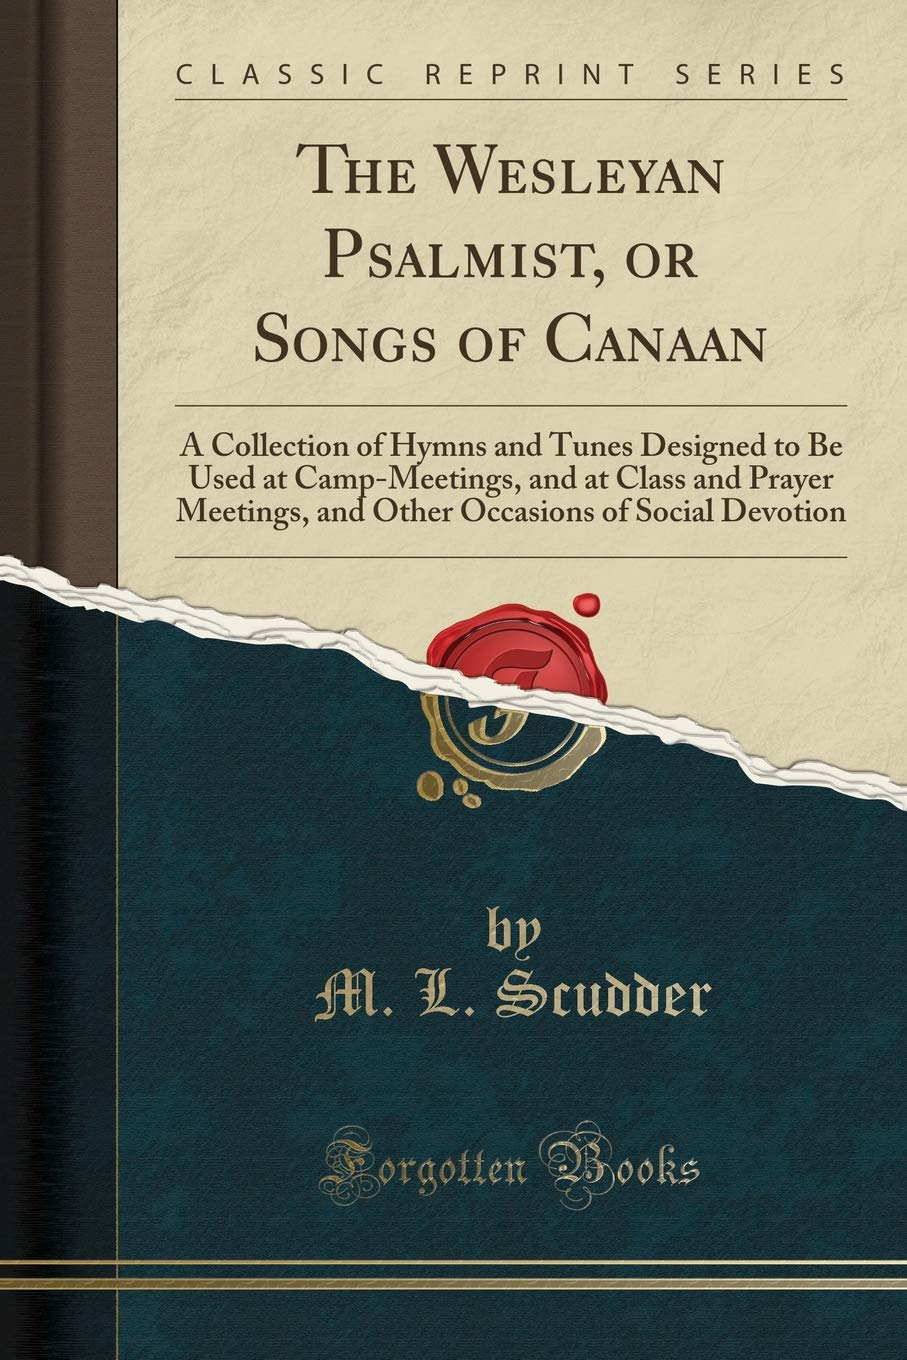 Download The Wesleyan Psalmist, or Songs of Canaan: A Collection of Hymns and Tunes Designed to Be Used at Camp-Meetings, and at Class and Prayer Meetings, and ... of Social Devotion (Classic Reprint) PDF